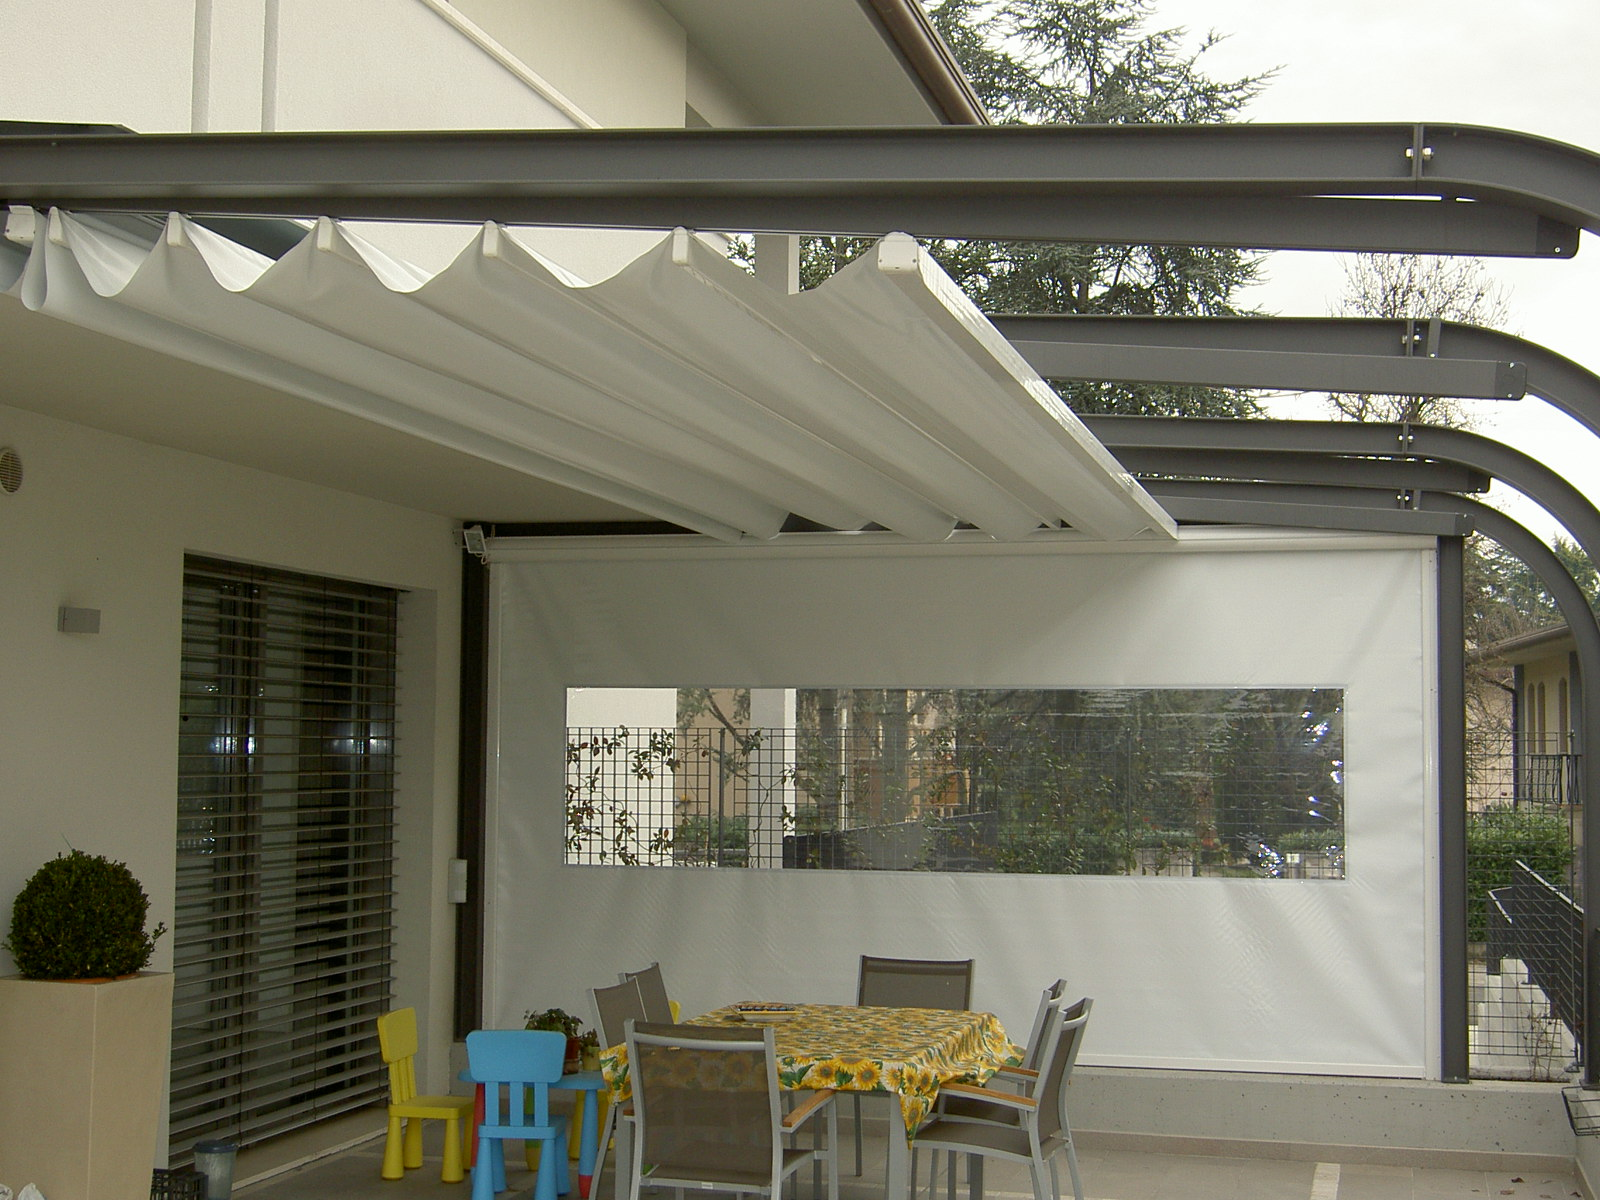 tecnic Retractabe shade fore home.JPG